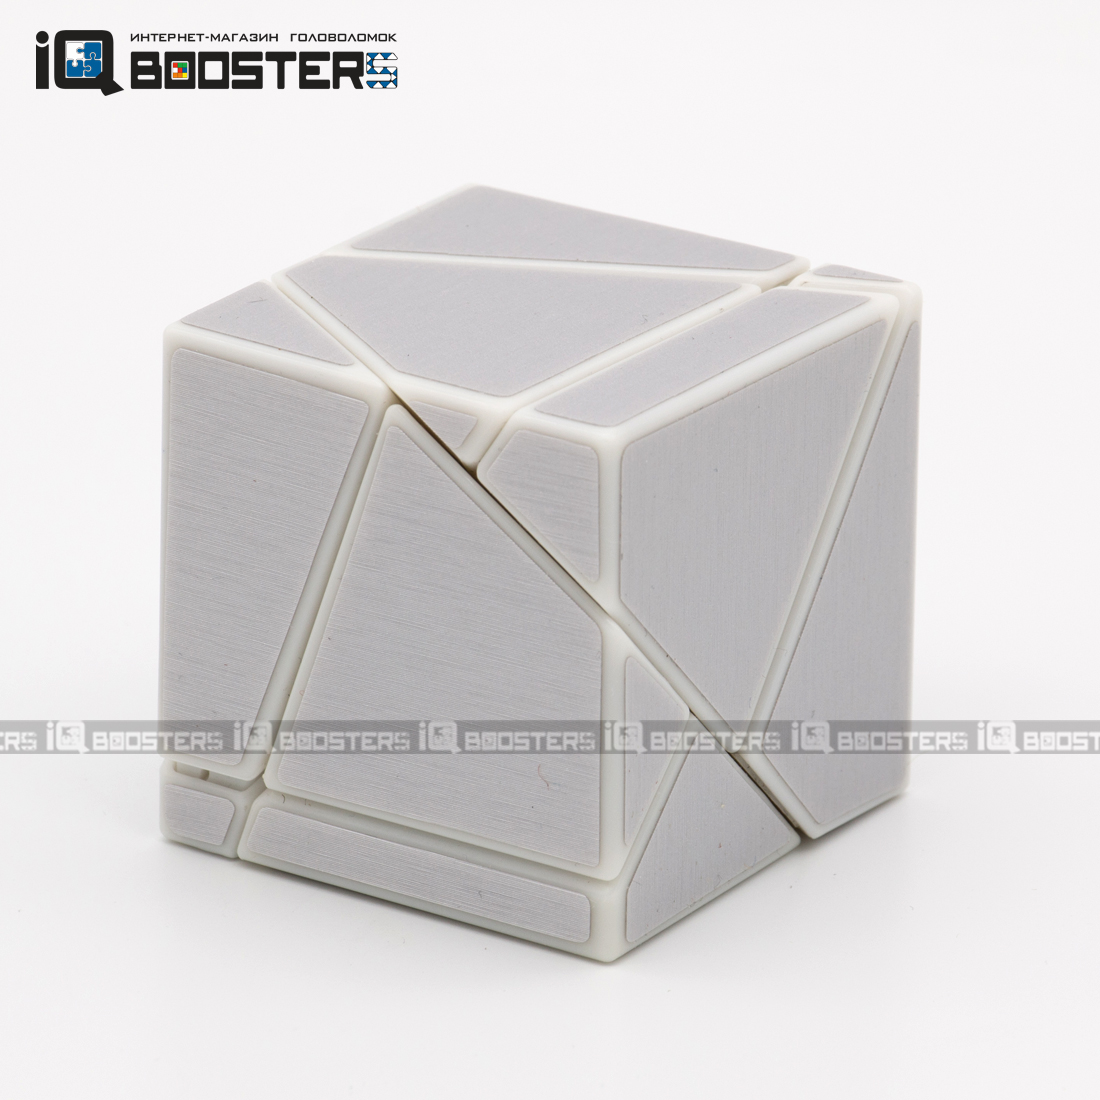 limcube_ghost_2x2_1s